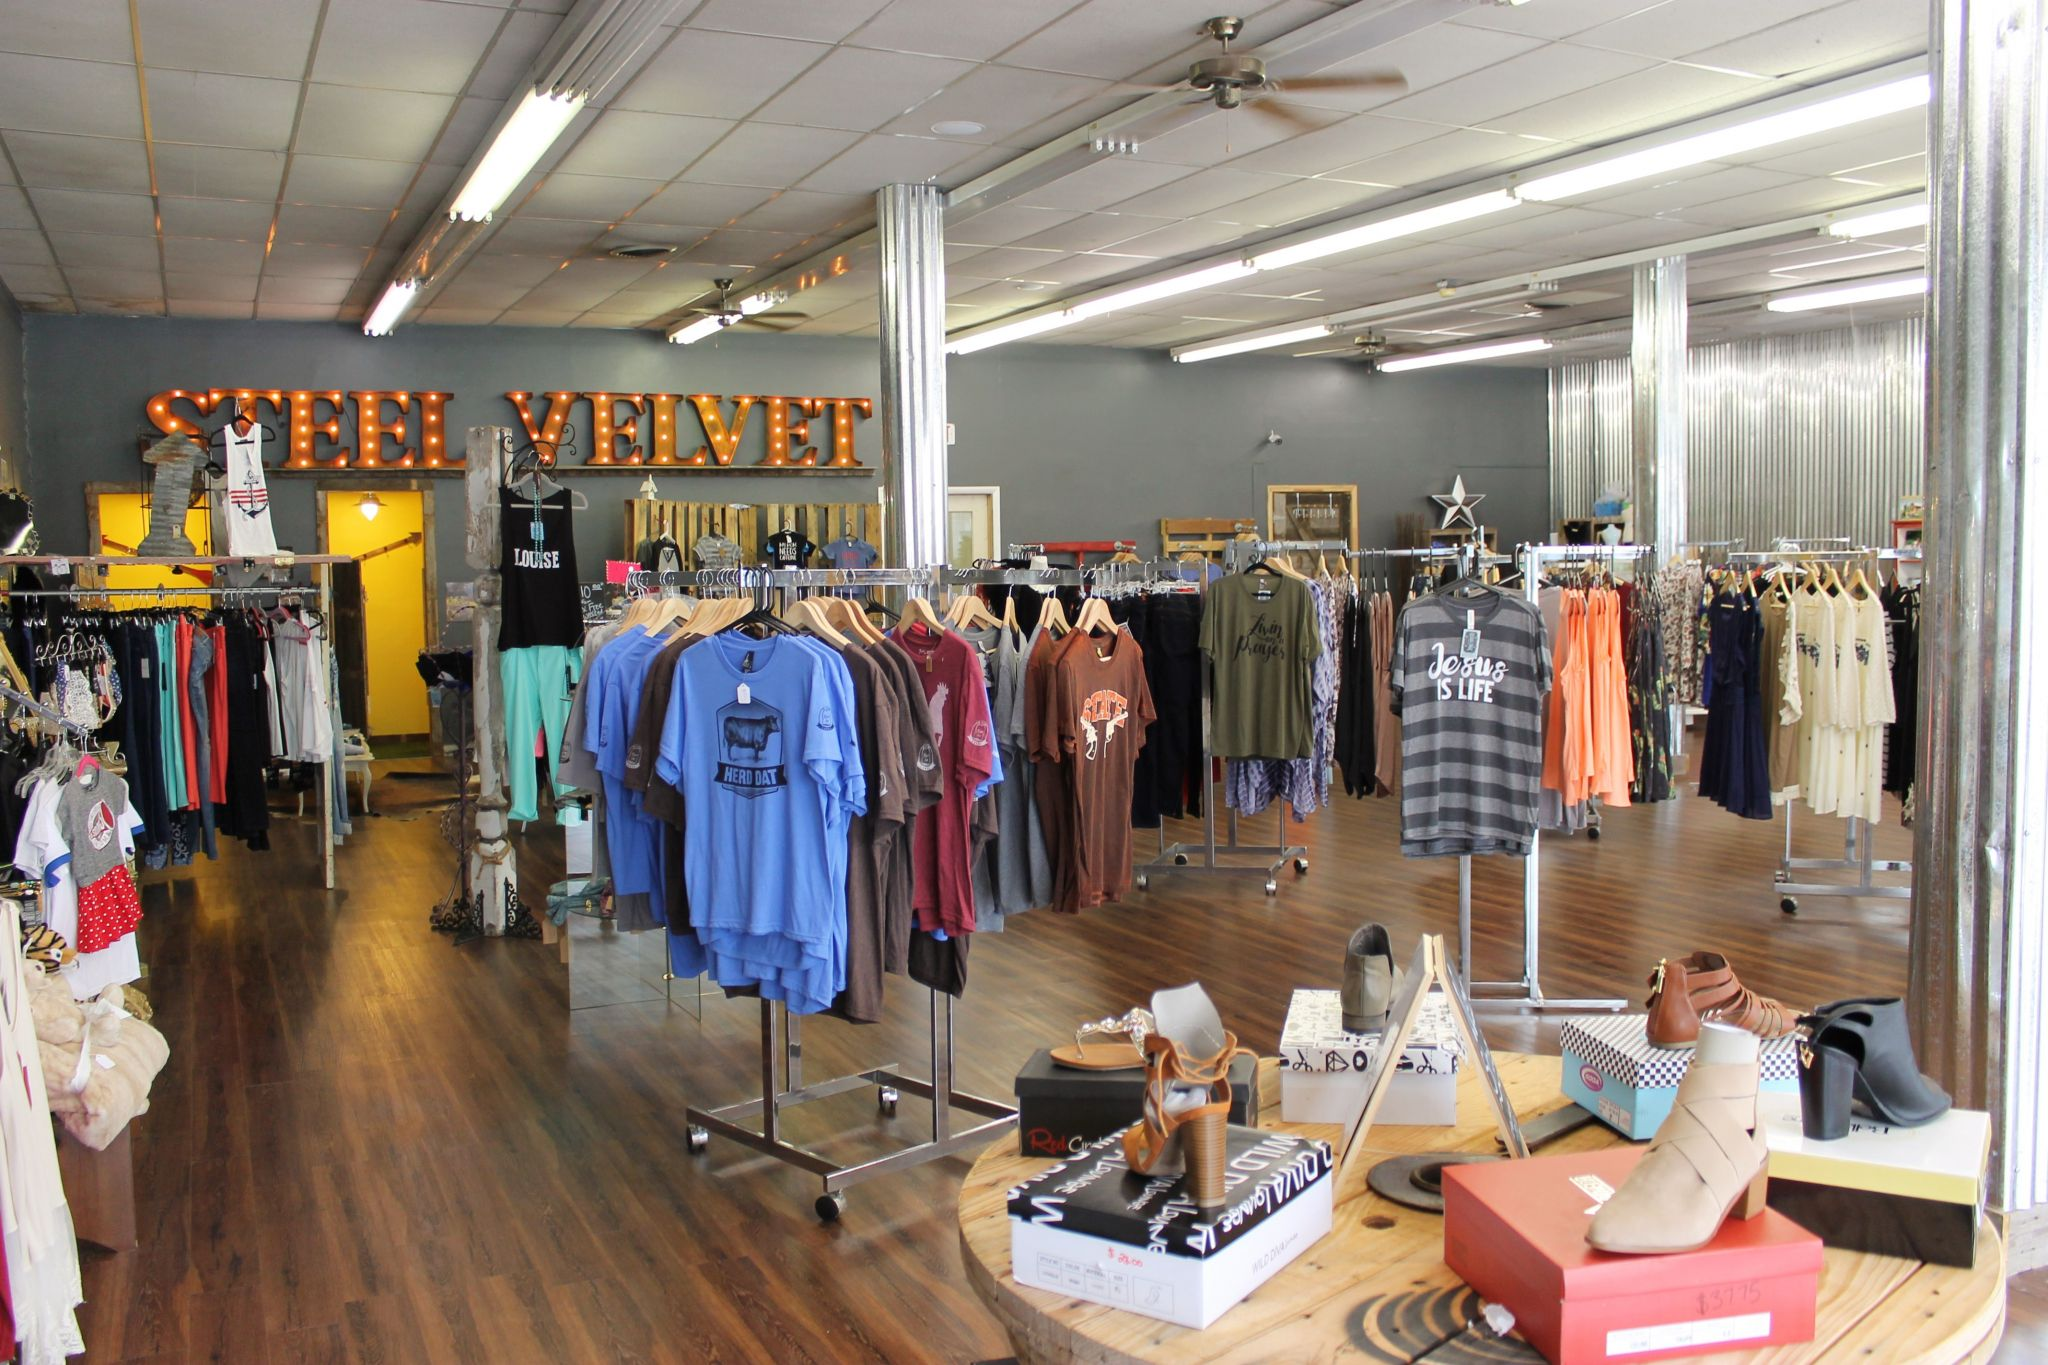 Steel Velvet Boutique in Chickasha